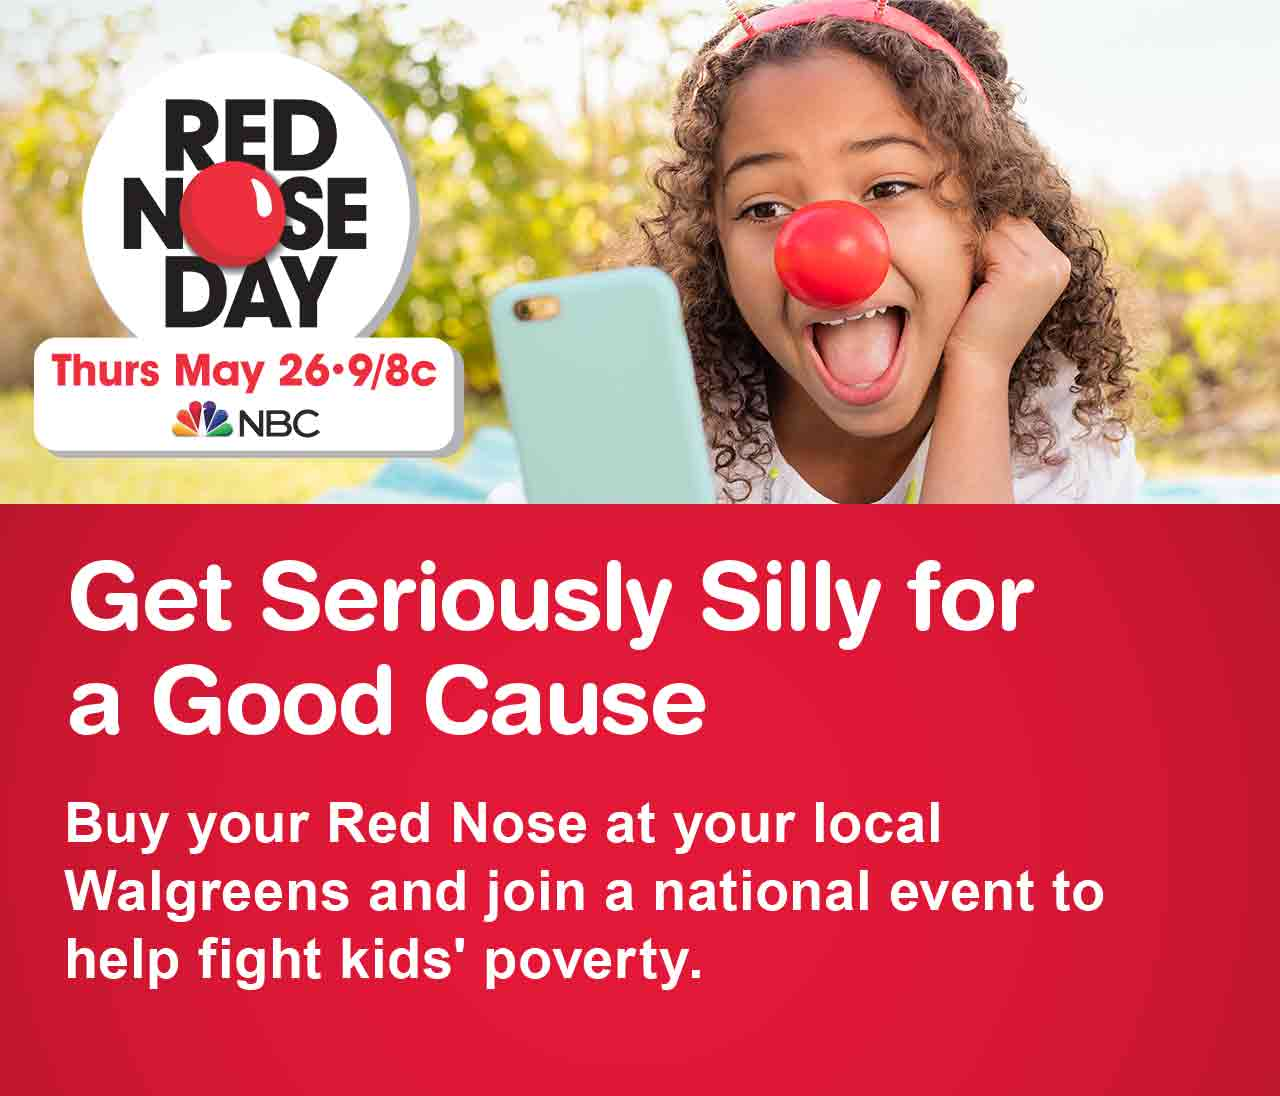 What Is Red Nose Day 2016 Comic Relief - Wikipedia